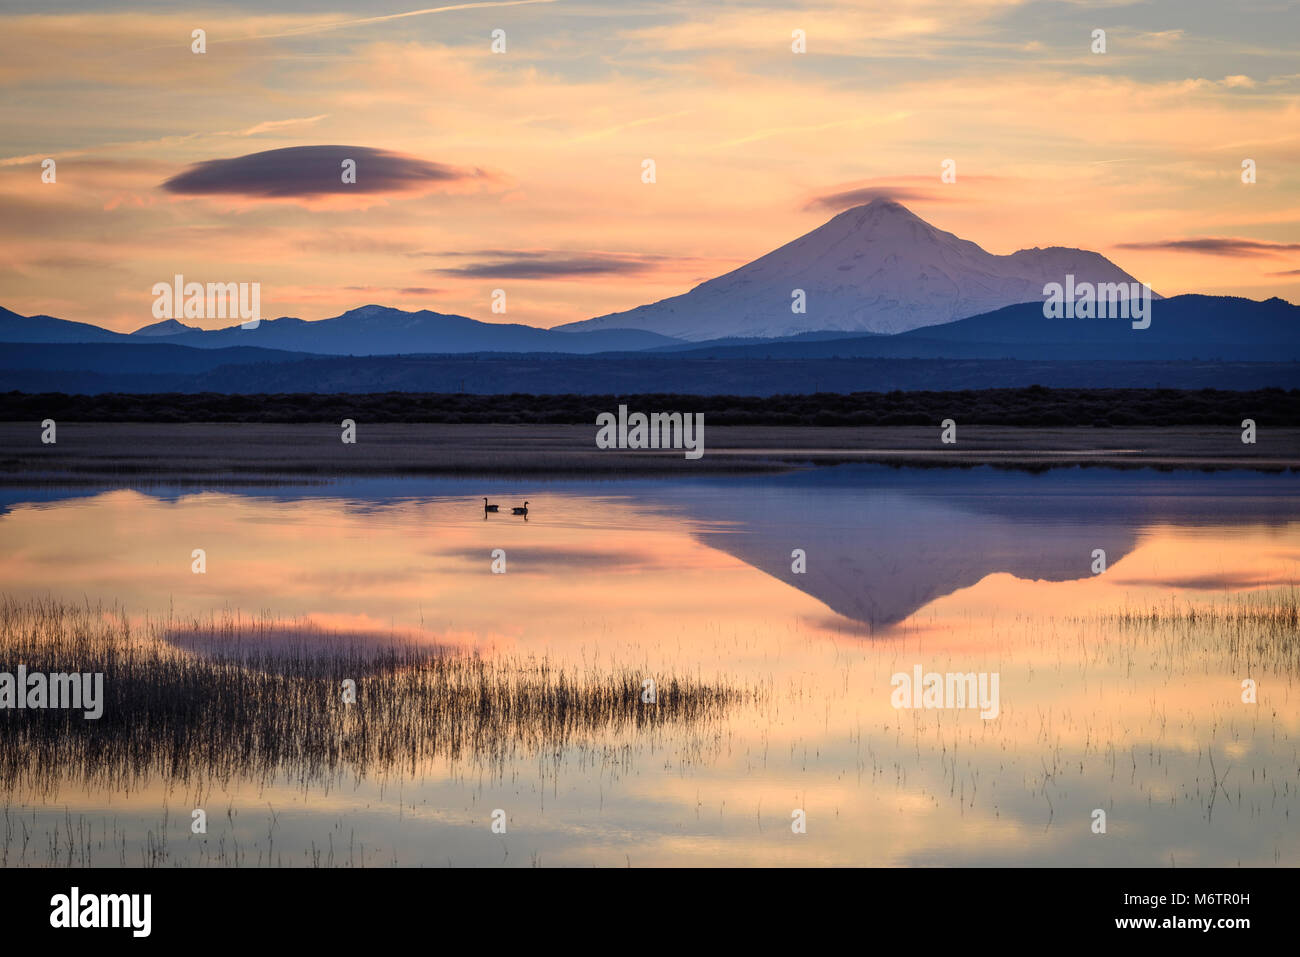 Canada Geese at Lower Klamath Lake with Mount Shasta in the distance; Lower Klamath National Wildlife Refuge, California. - Stock Image